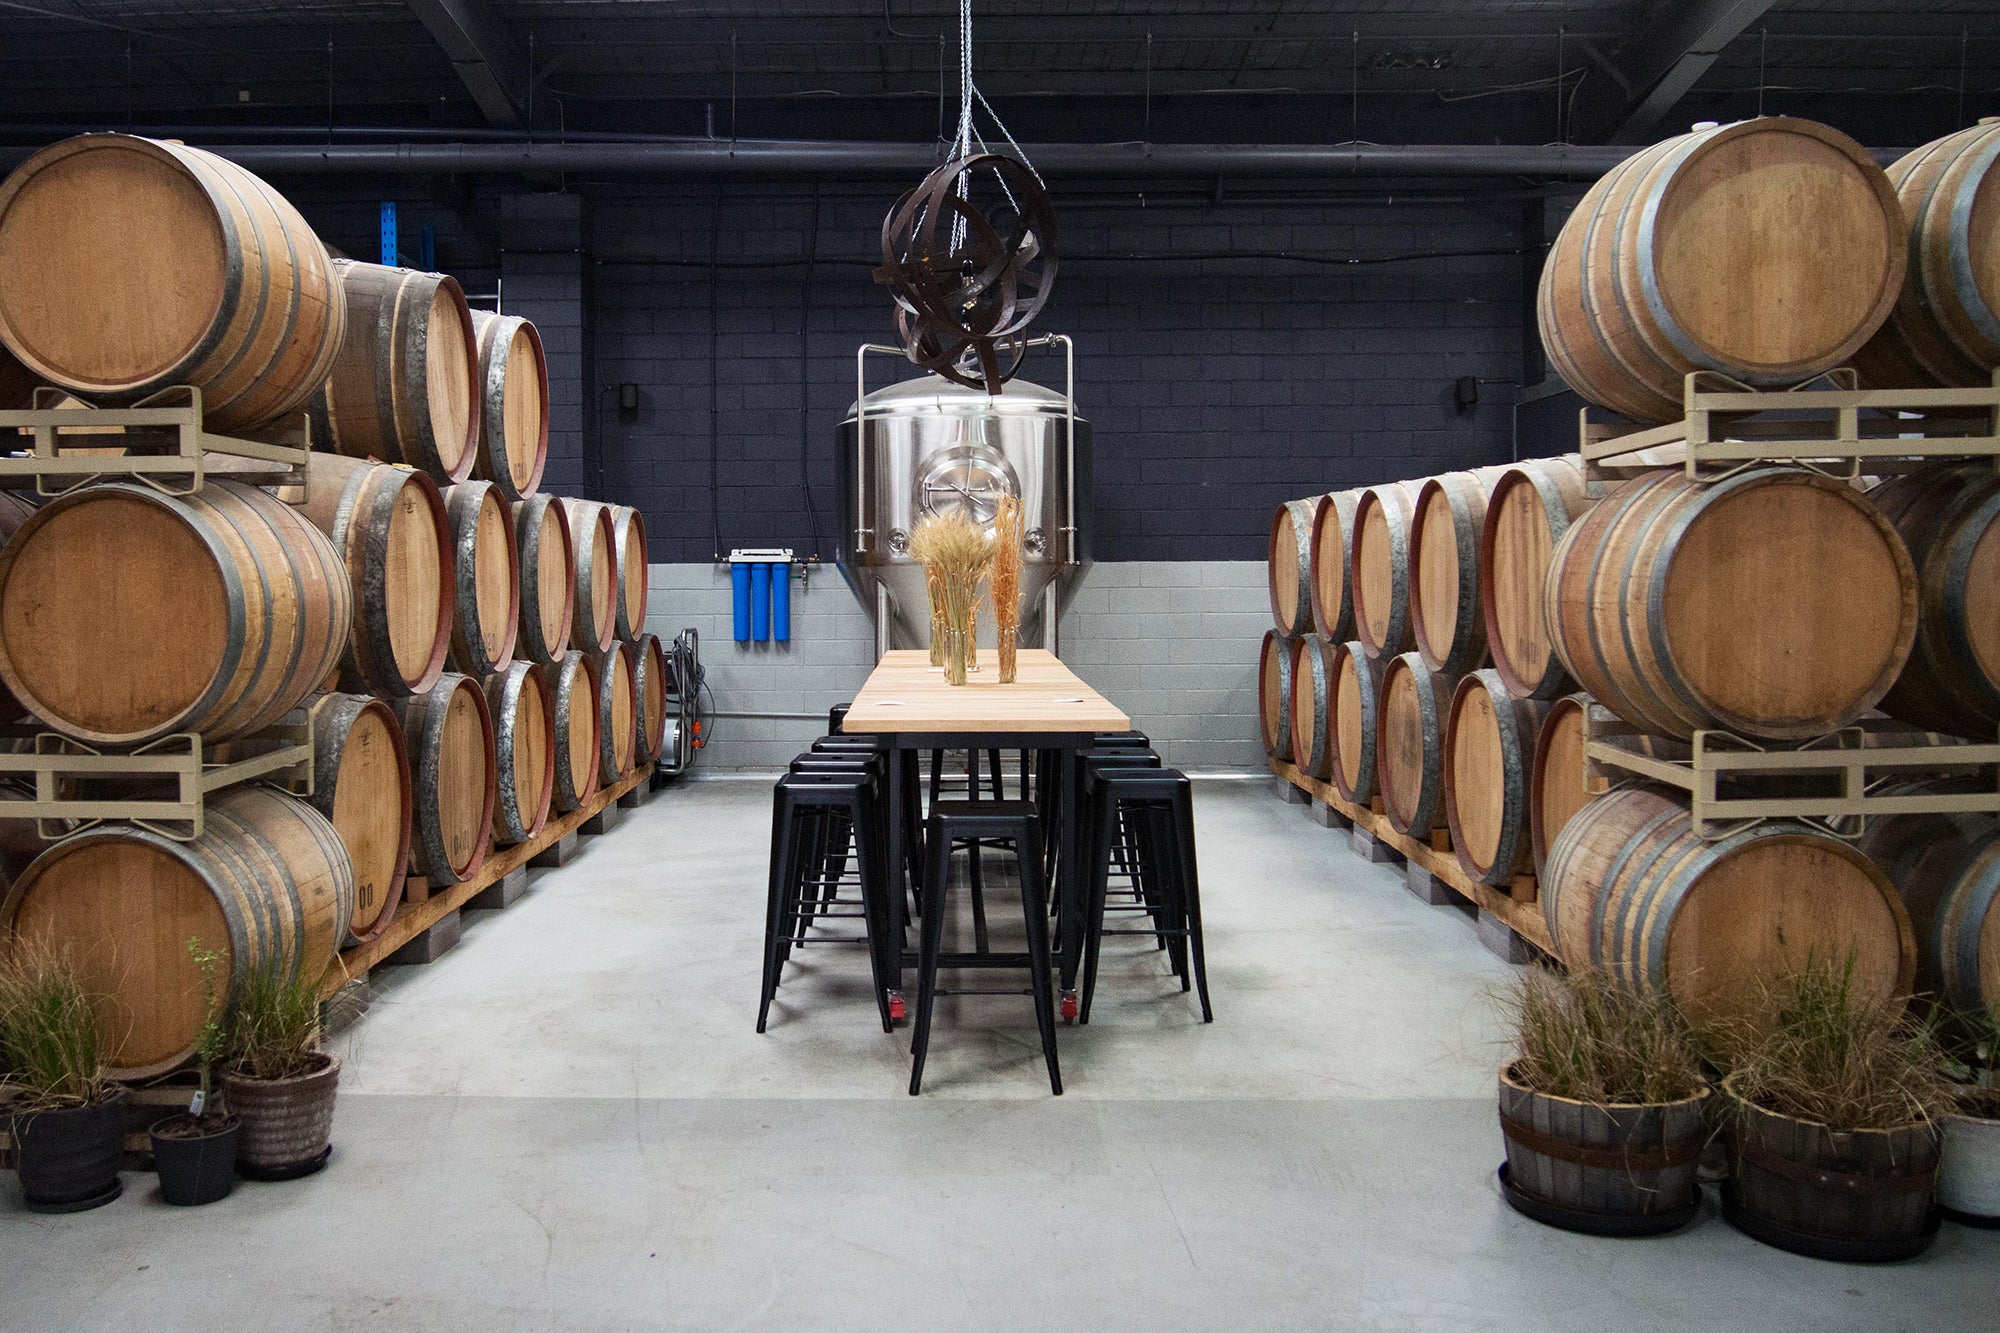 The Barrel Table